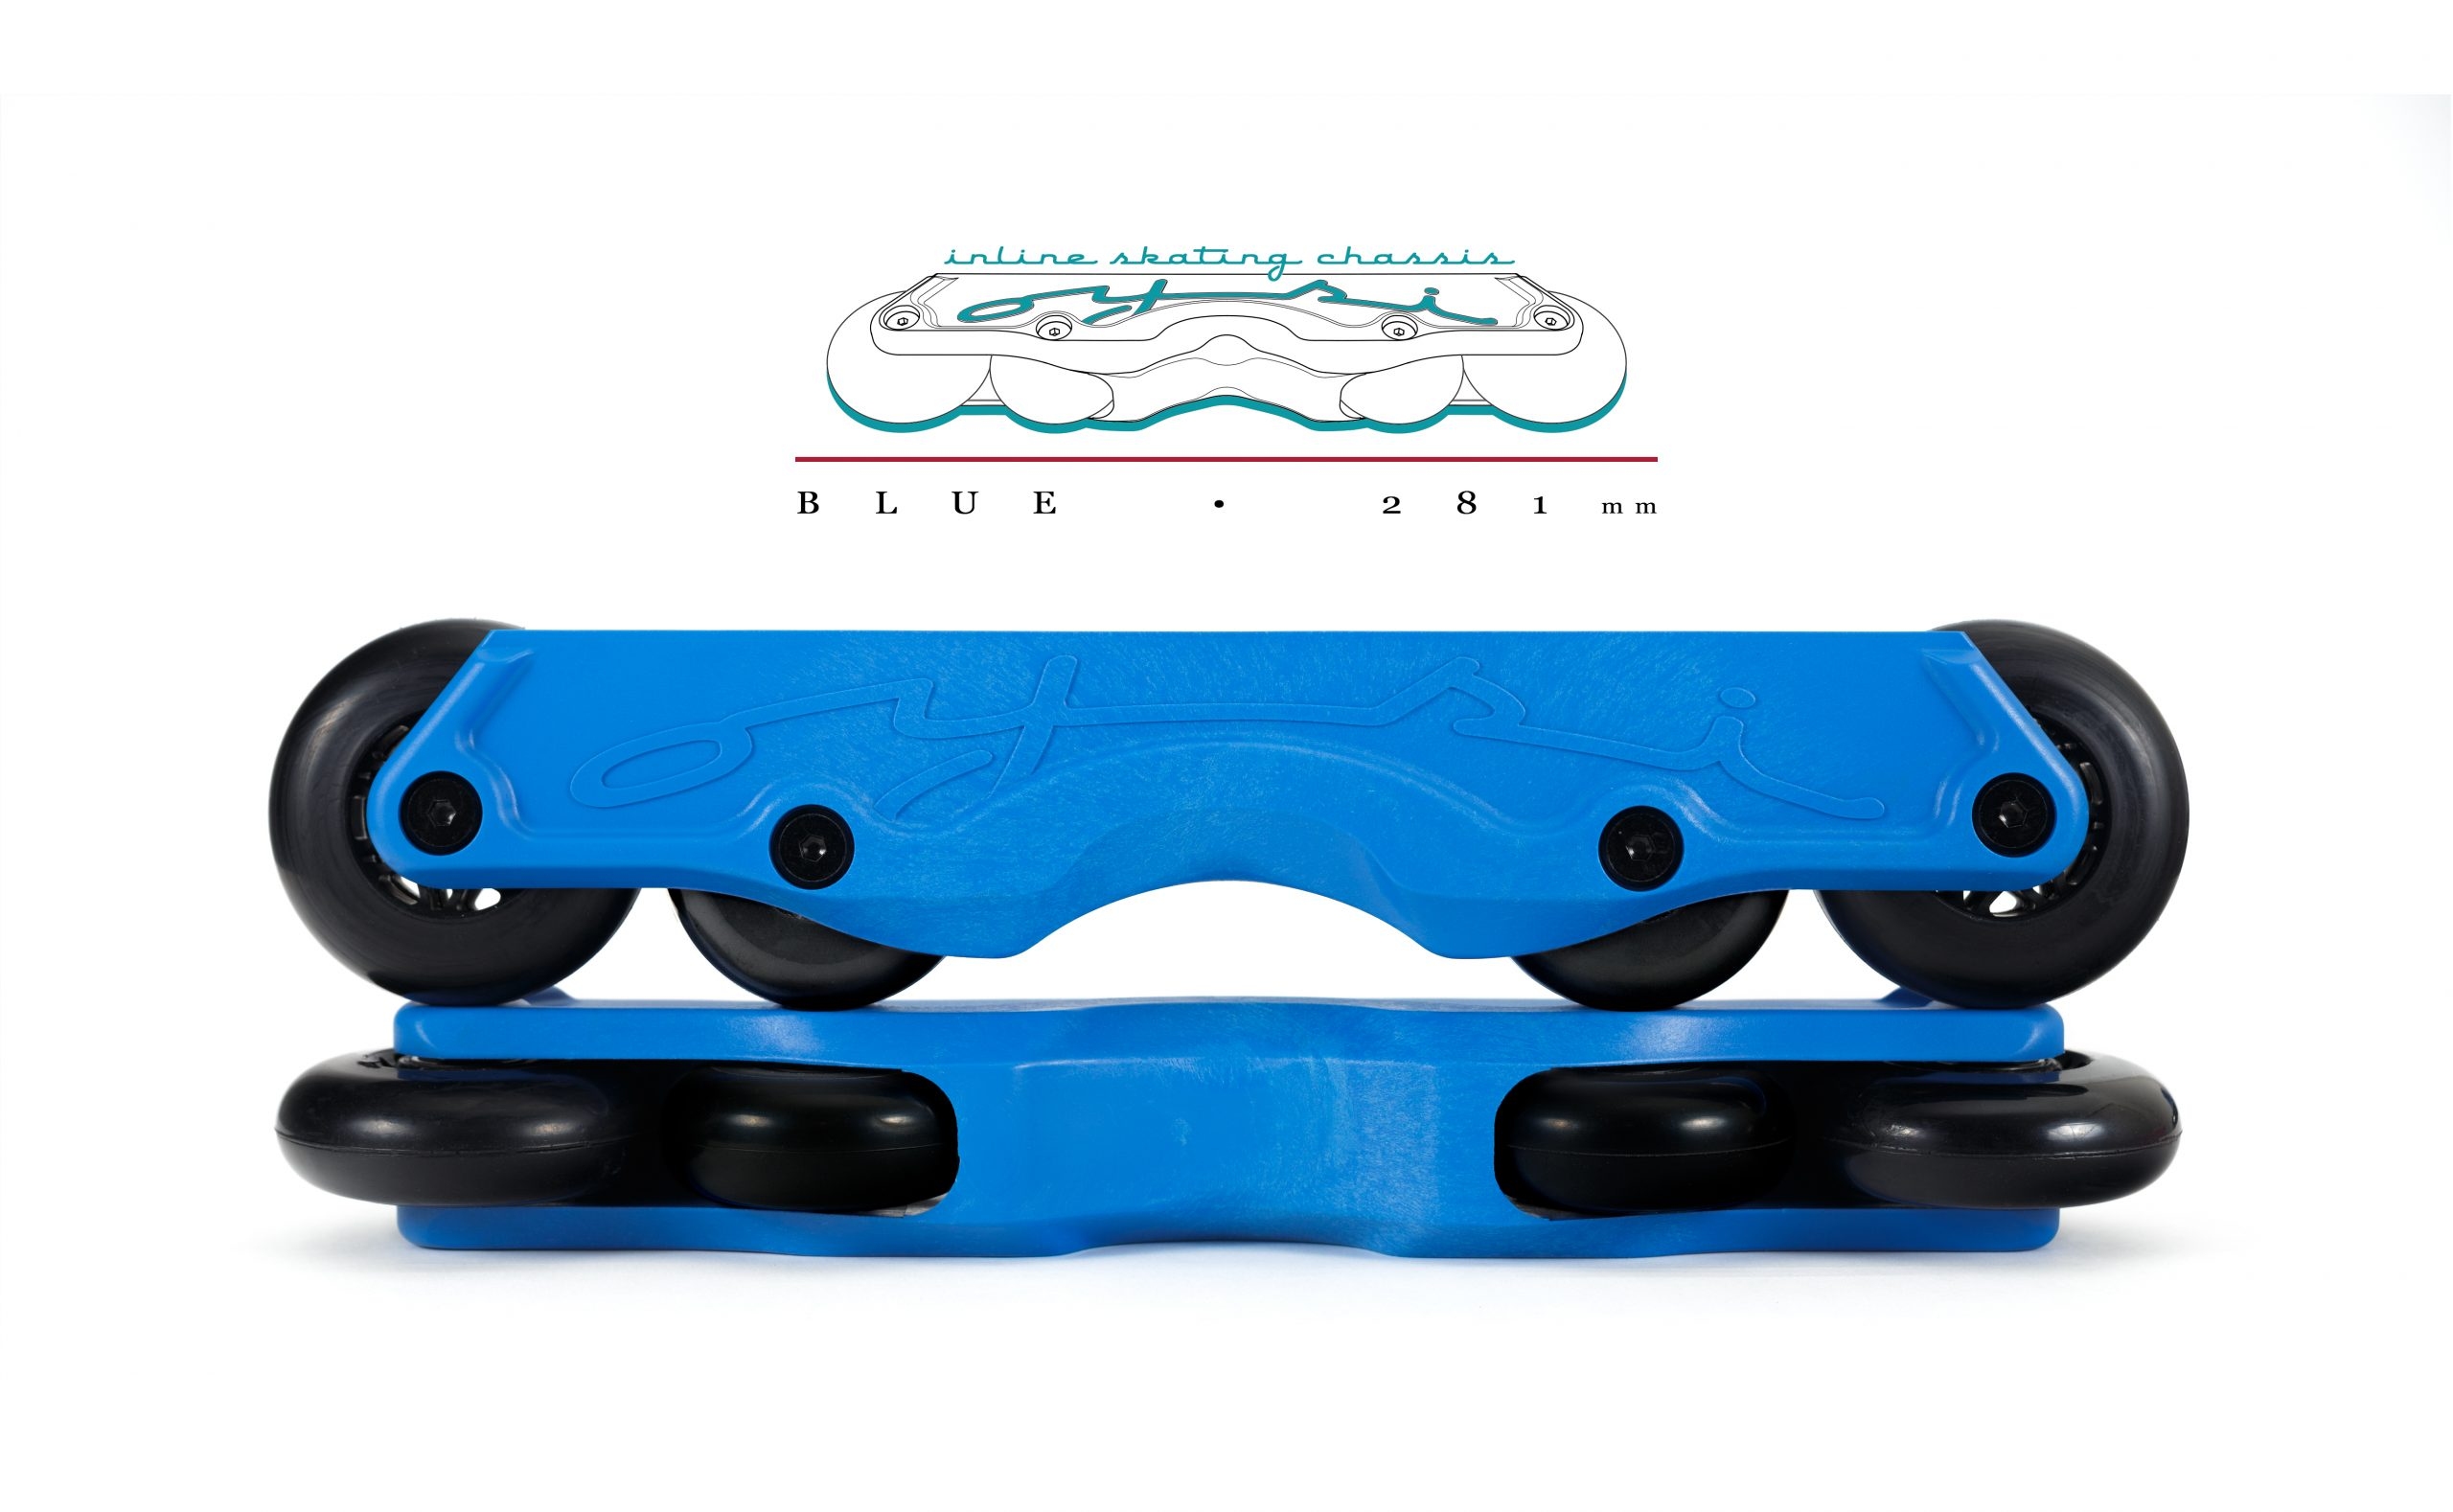 OISC Oysi Inline Skating Chassis 72mm Blue